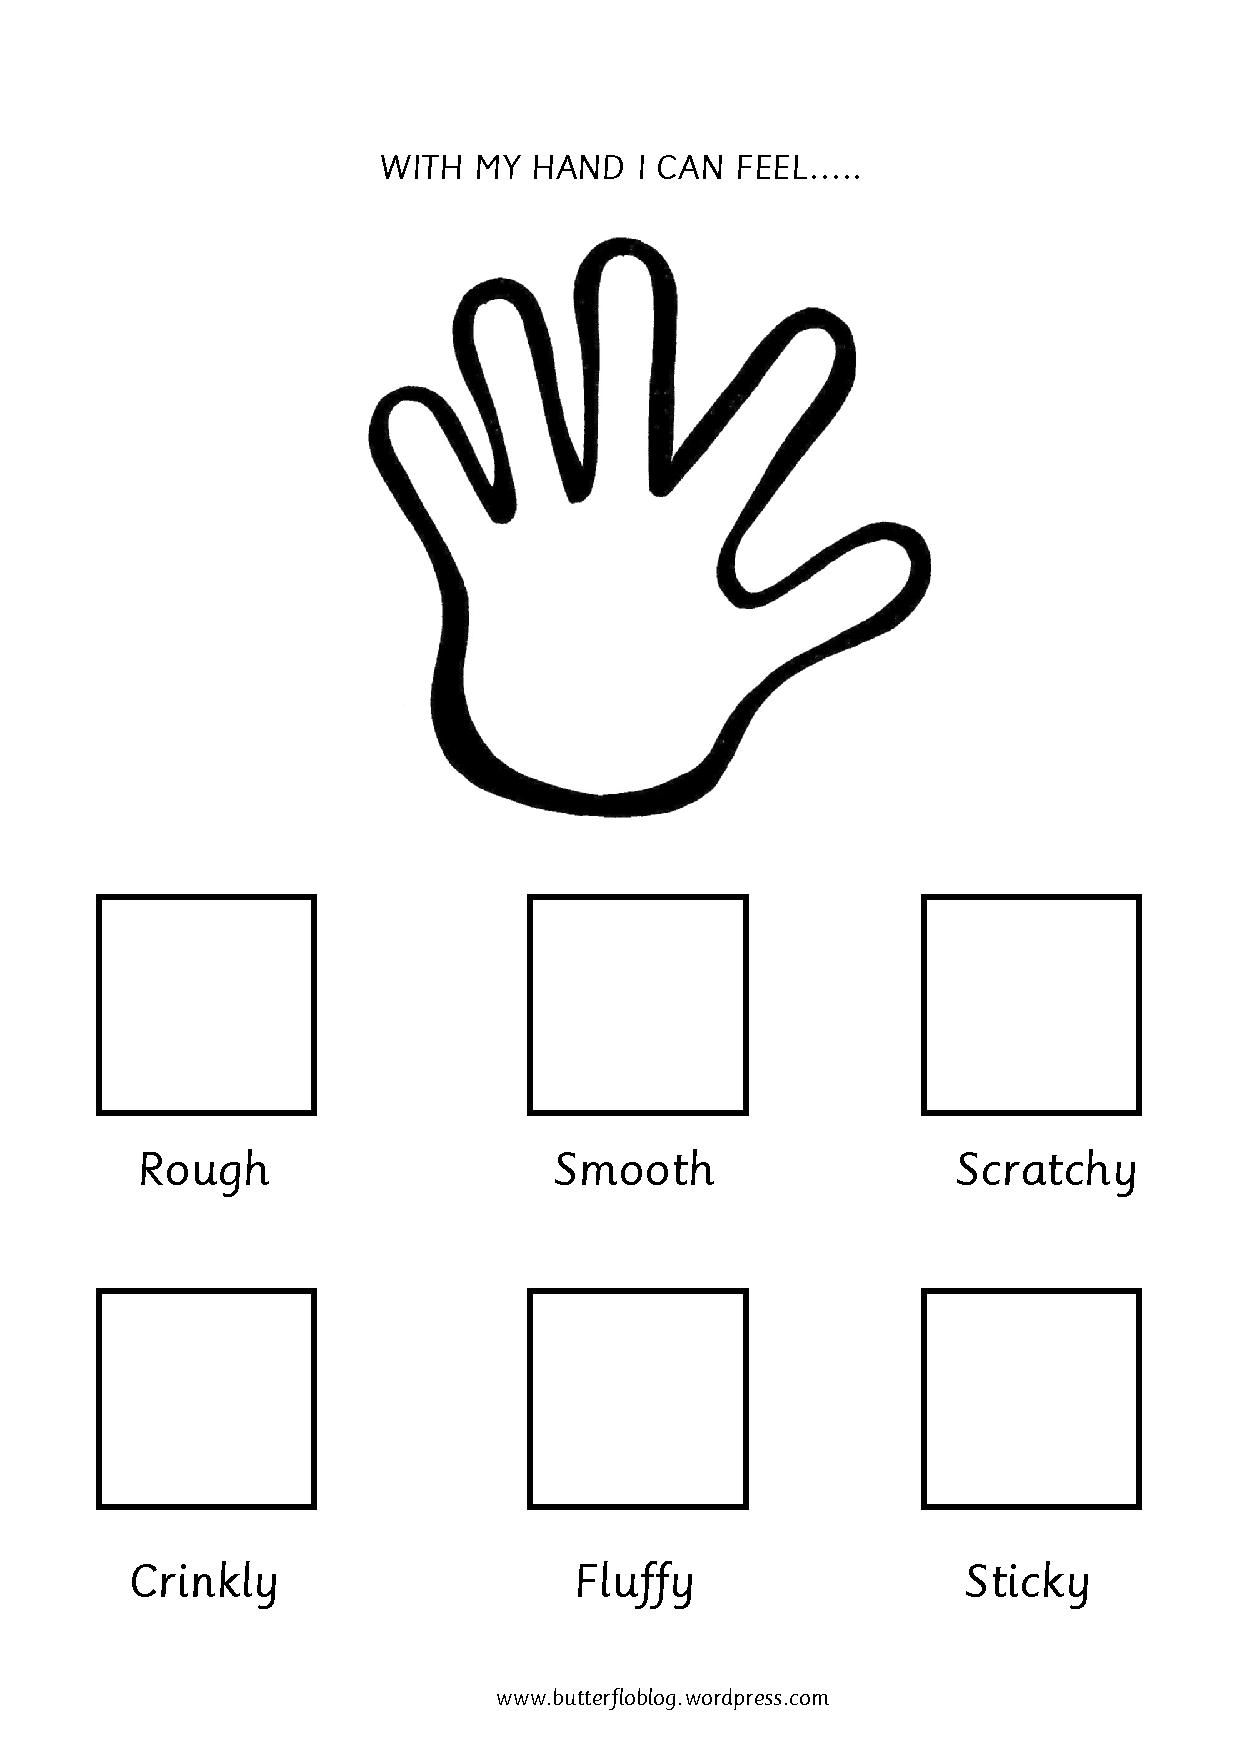 Smooth And Rough Texture Worksheet For Kindergarten